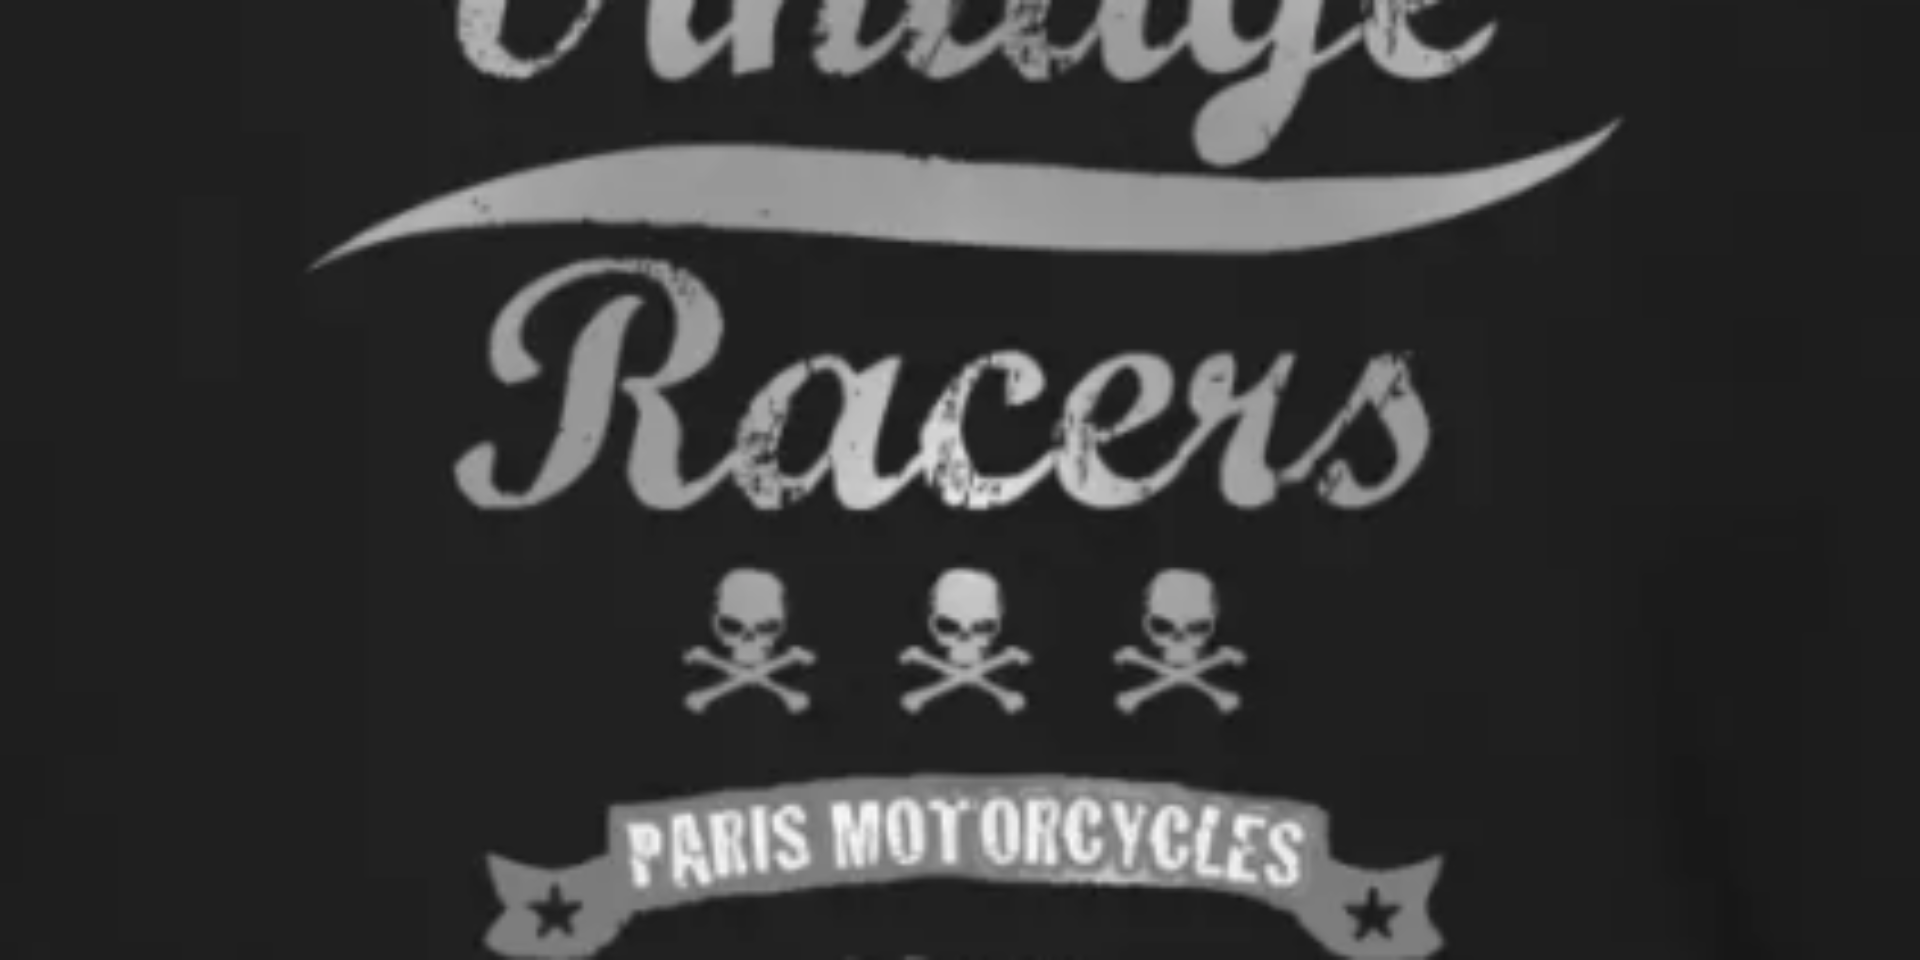 vintage racers paris